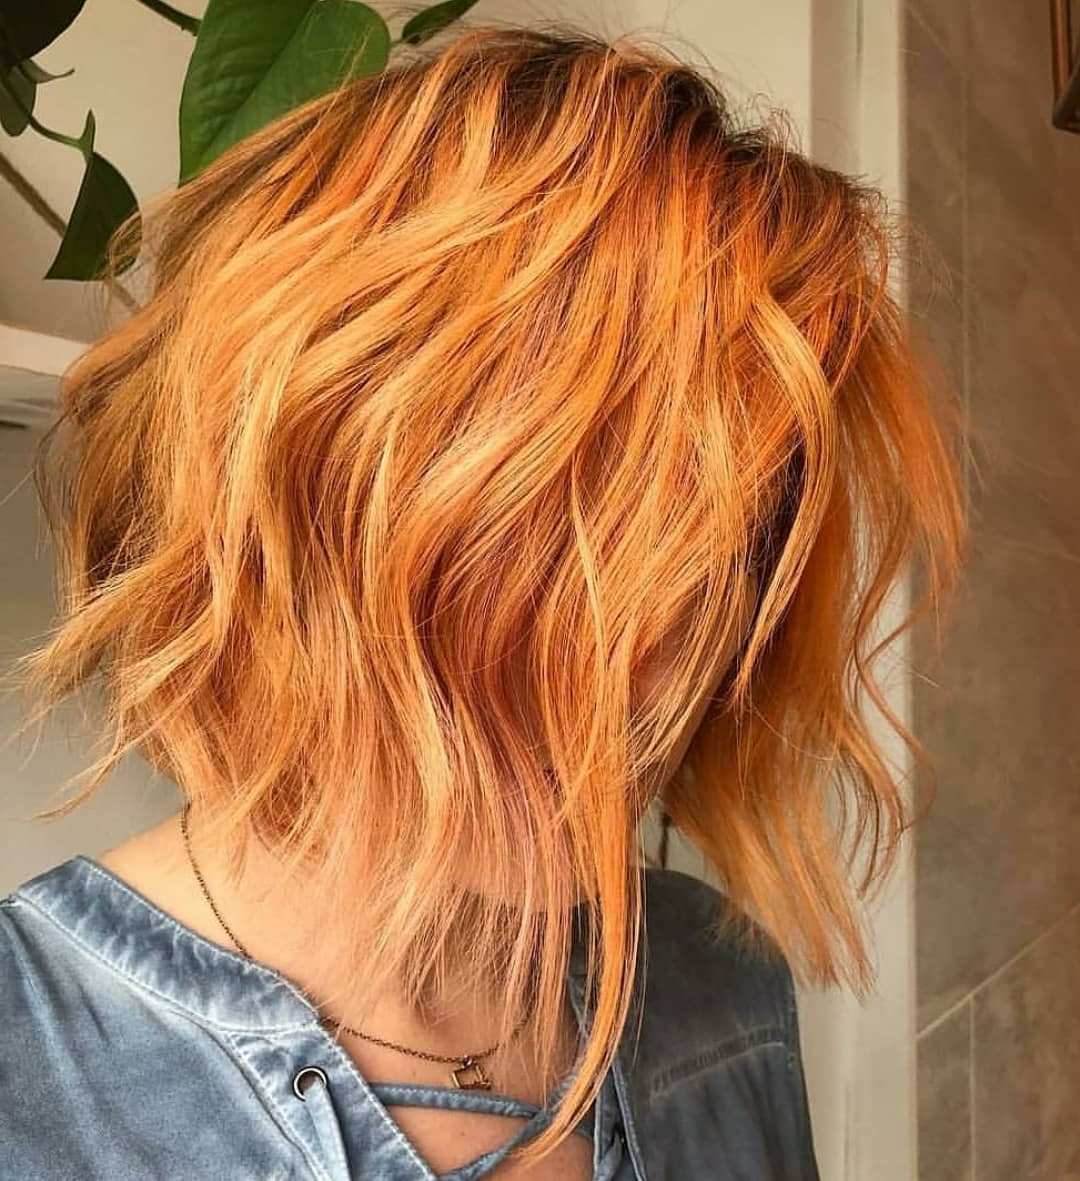 10 Trendy Choppy Lob Haircuts For Women, Best Medium Hair Pertaining To Popular Shoulder Length Wavy Layered Hairstyles With Highlights (Gallery 20 of 20)